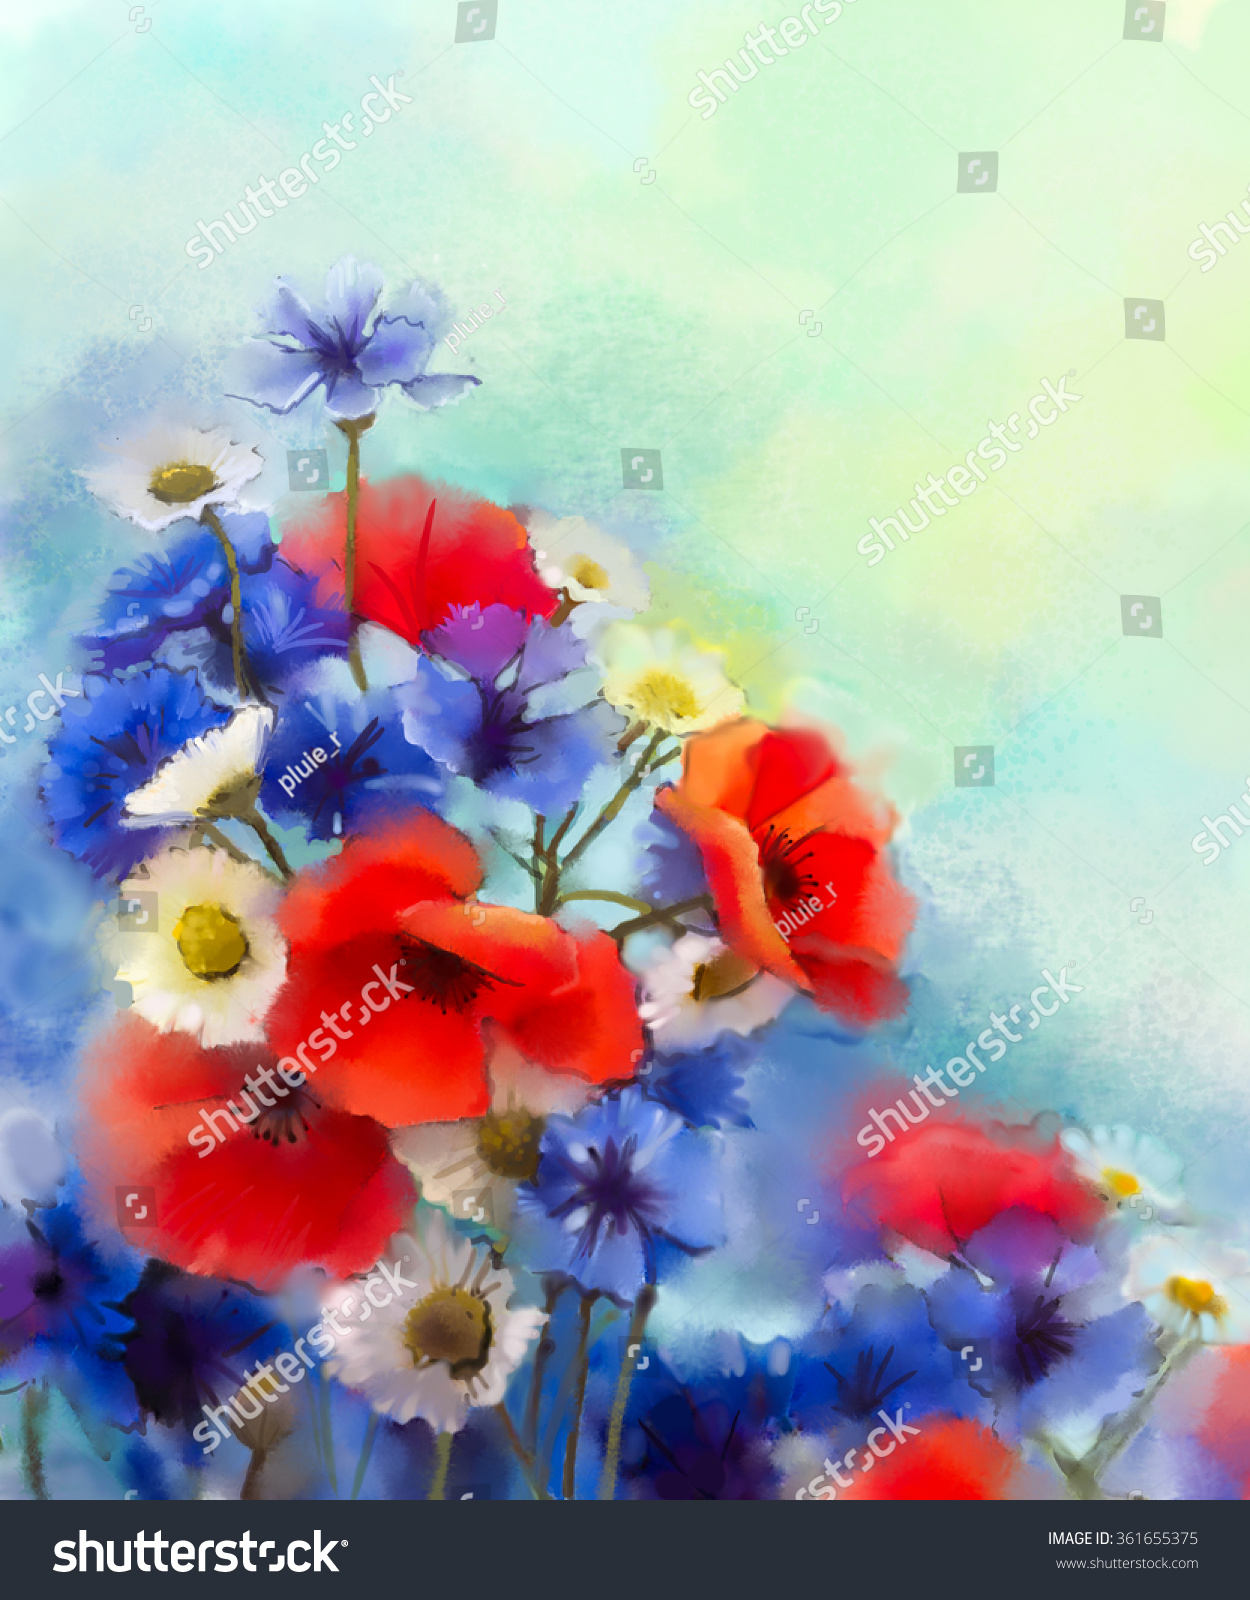 Royalty-free Watercolor red poppy flowers, blue… #361655375 Stock ...